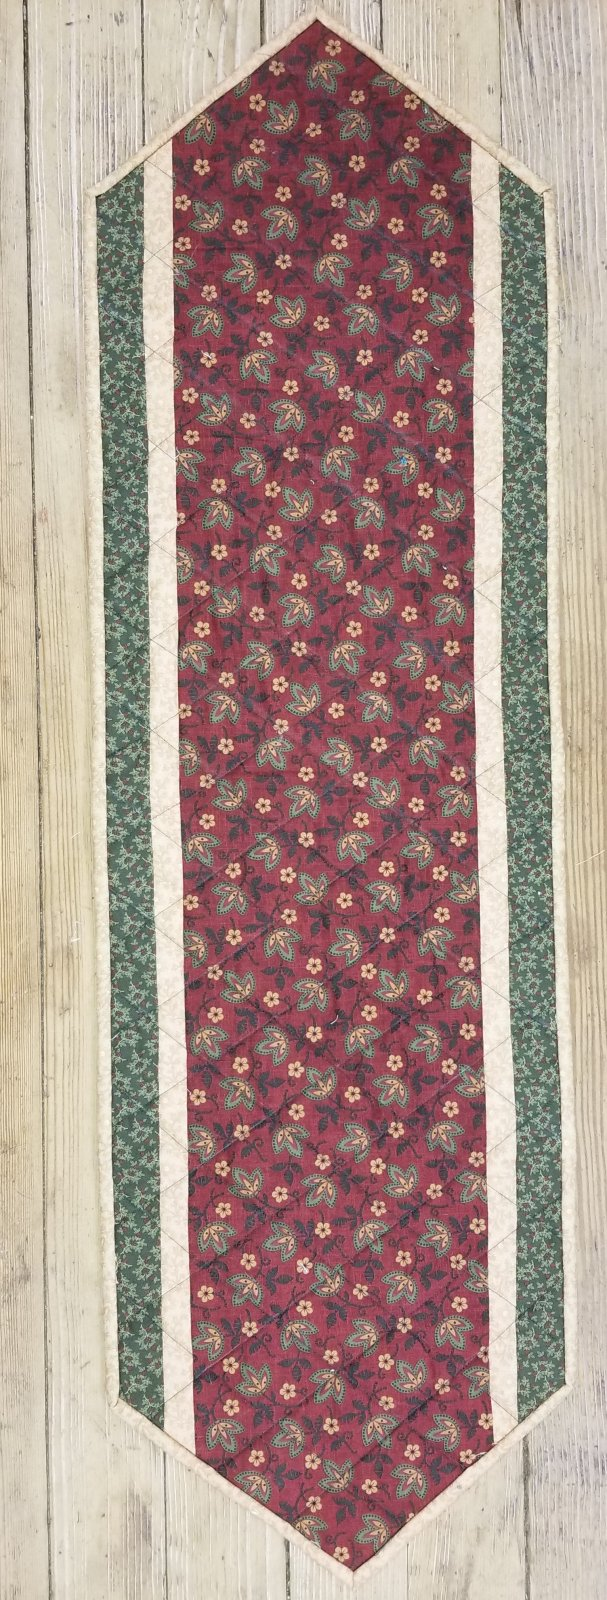 The Big Easy Table Runner Fabric Kit